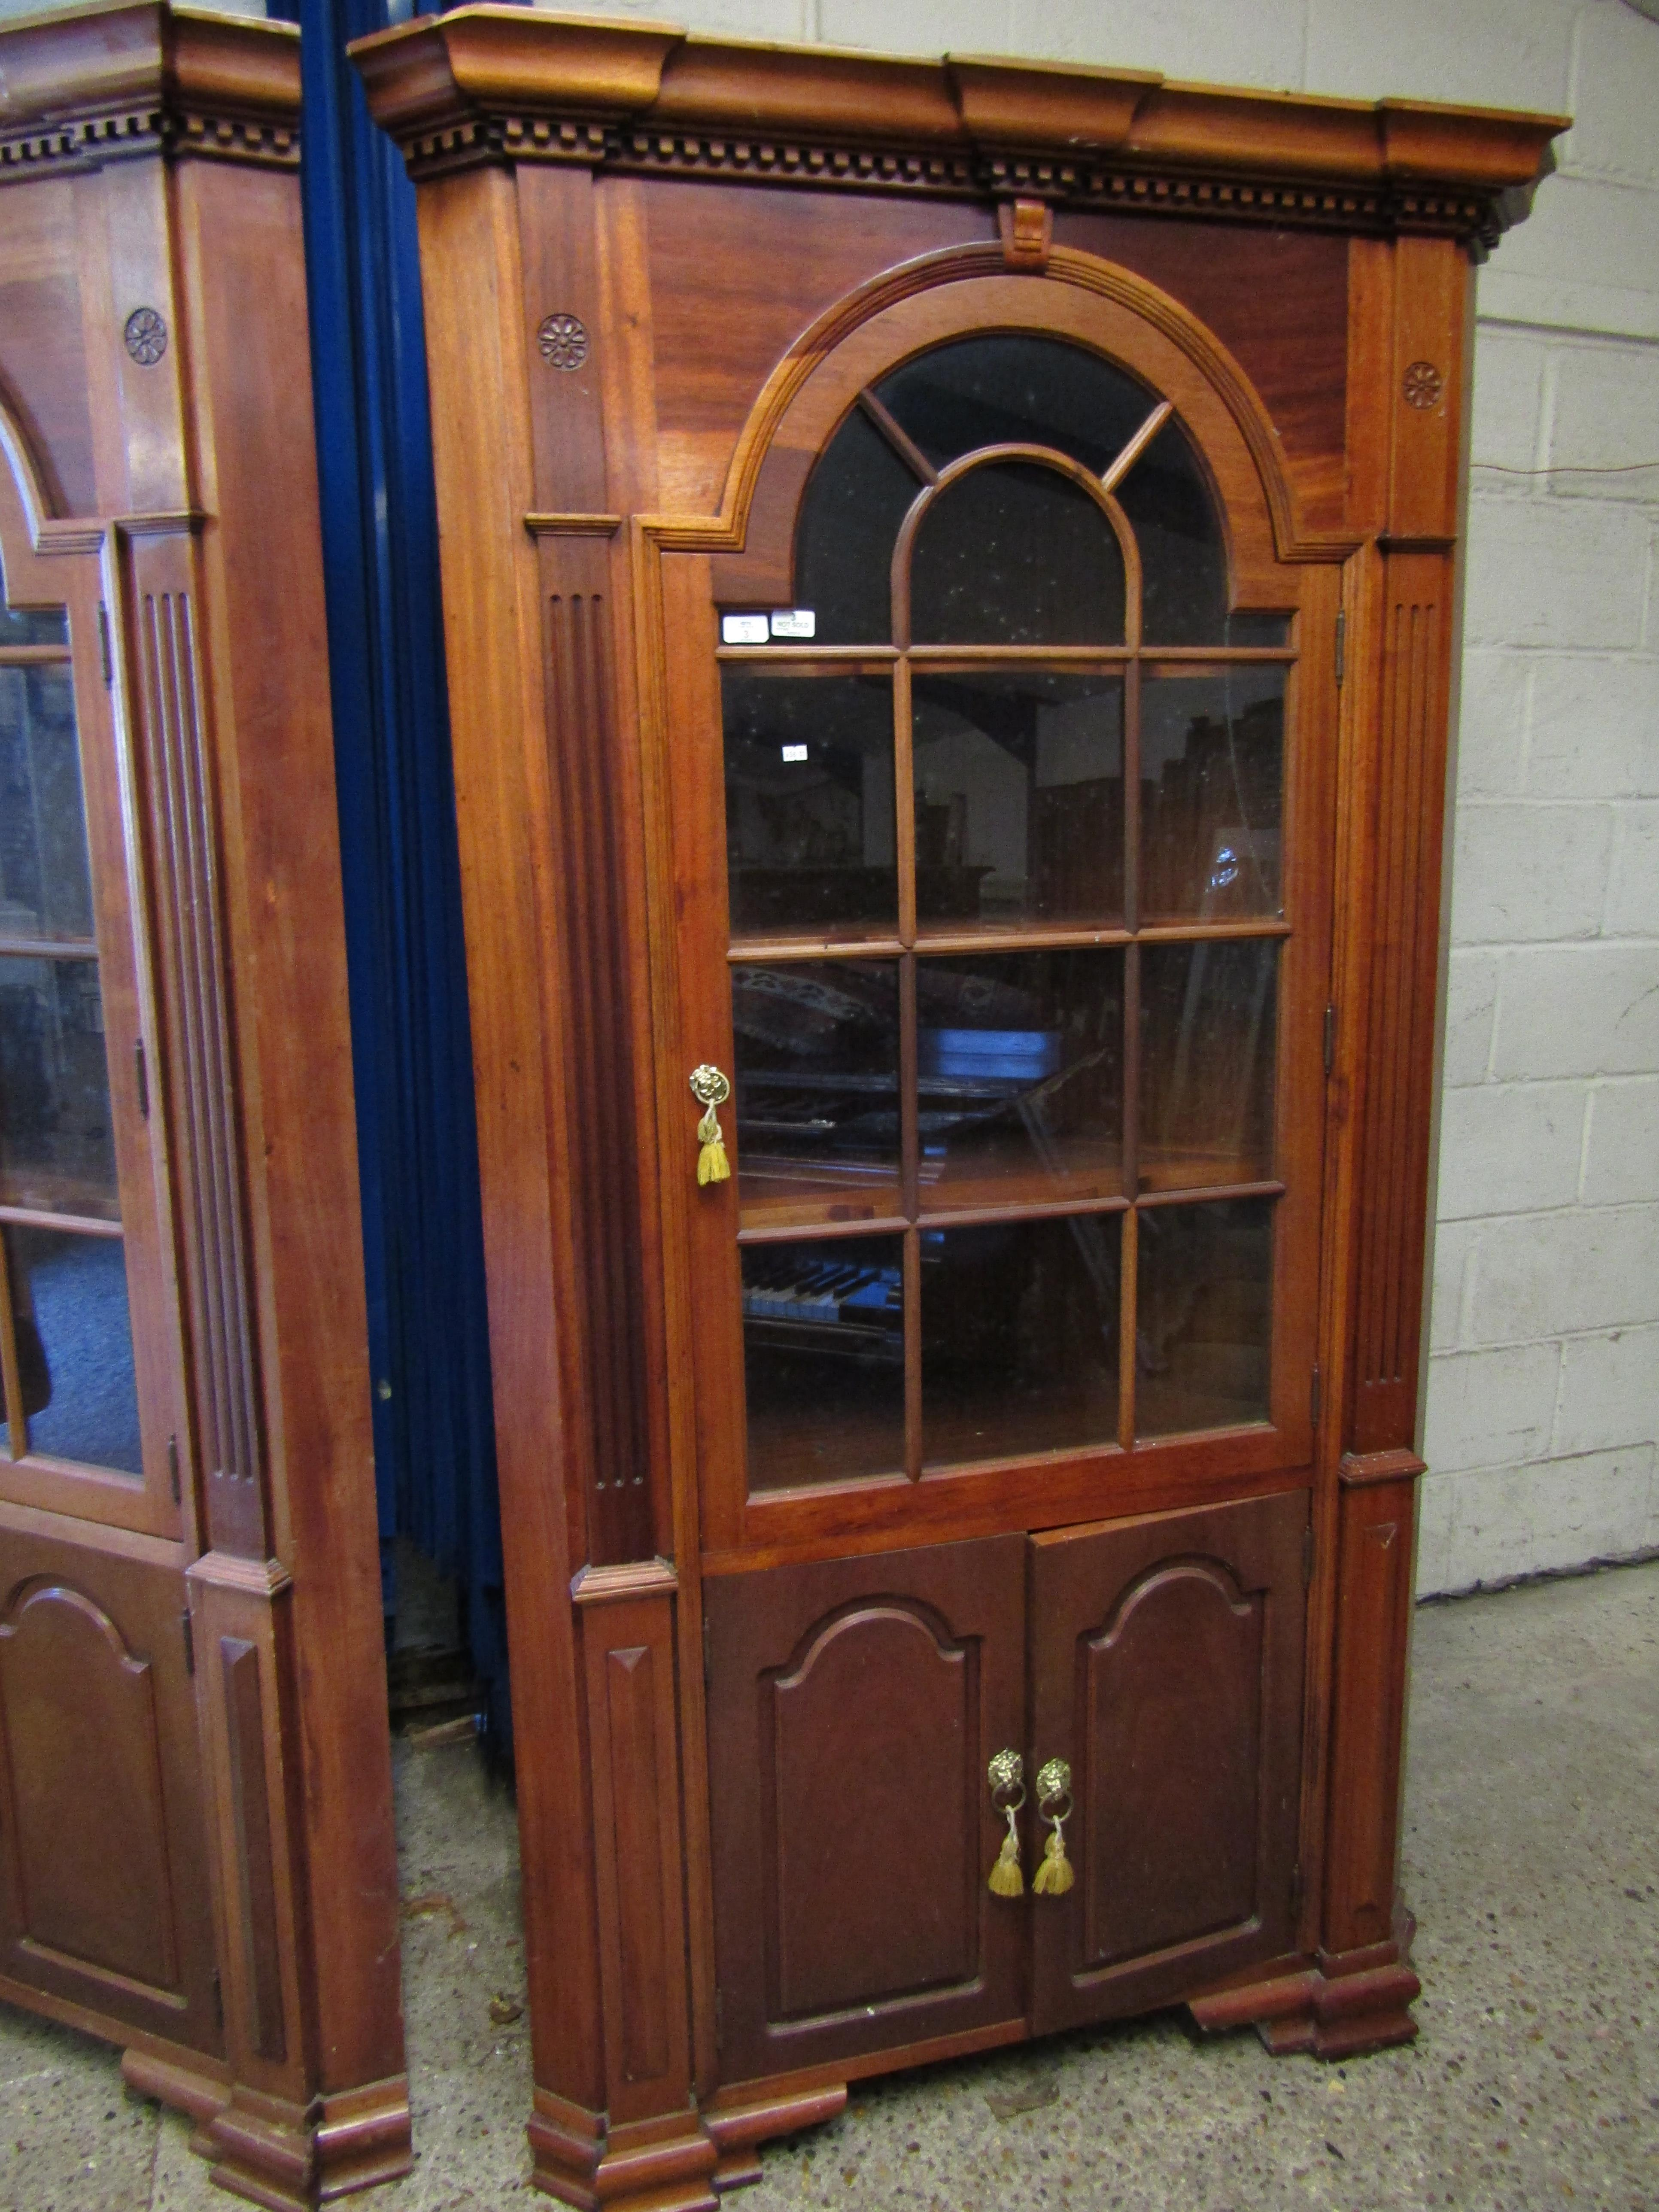 Lot 3 - GOOD QUALITY MAHOGANY LARGE FLOOR STANDING CORNER CUPBOARD WITH ASTRAGAL GLAZED DOOR OVER TWO